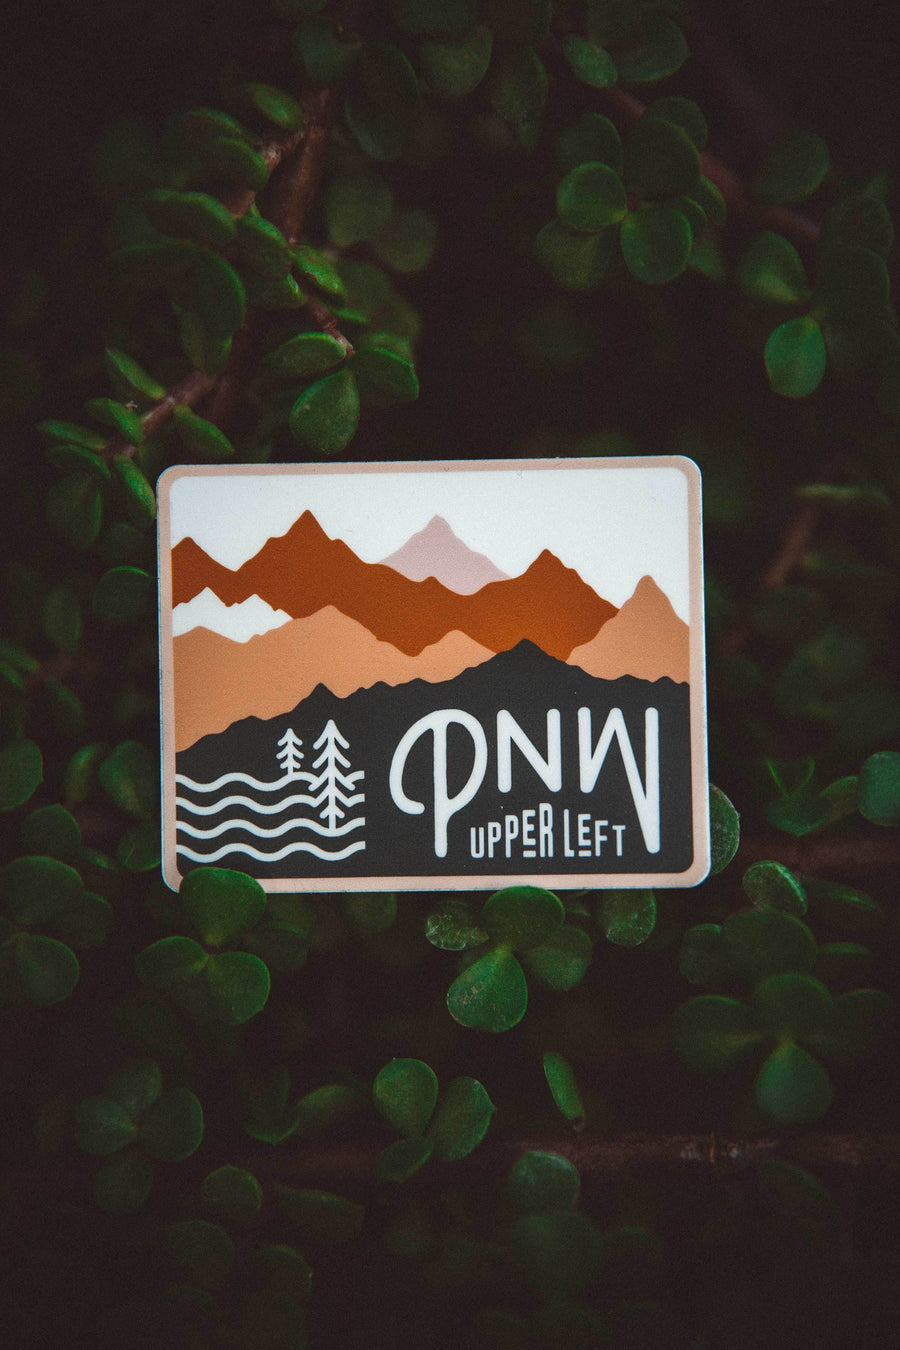 Upper Left PNW Sticker - Wondery, A Parks Apparel Brand